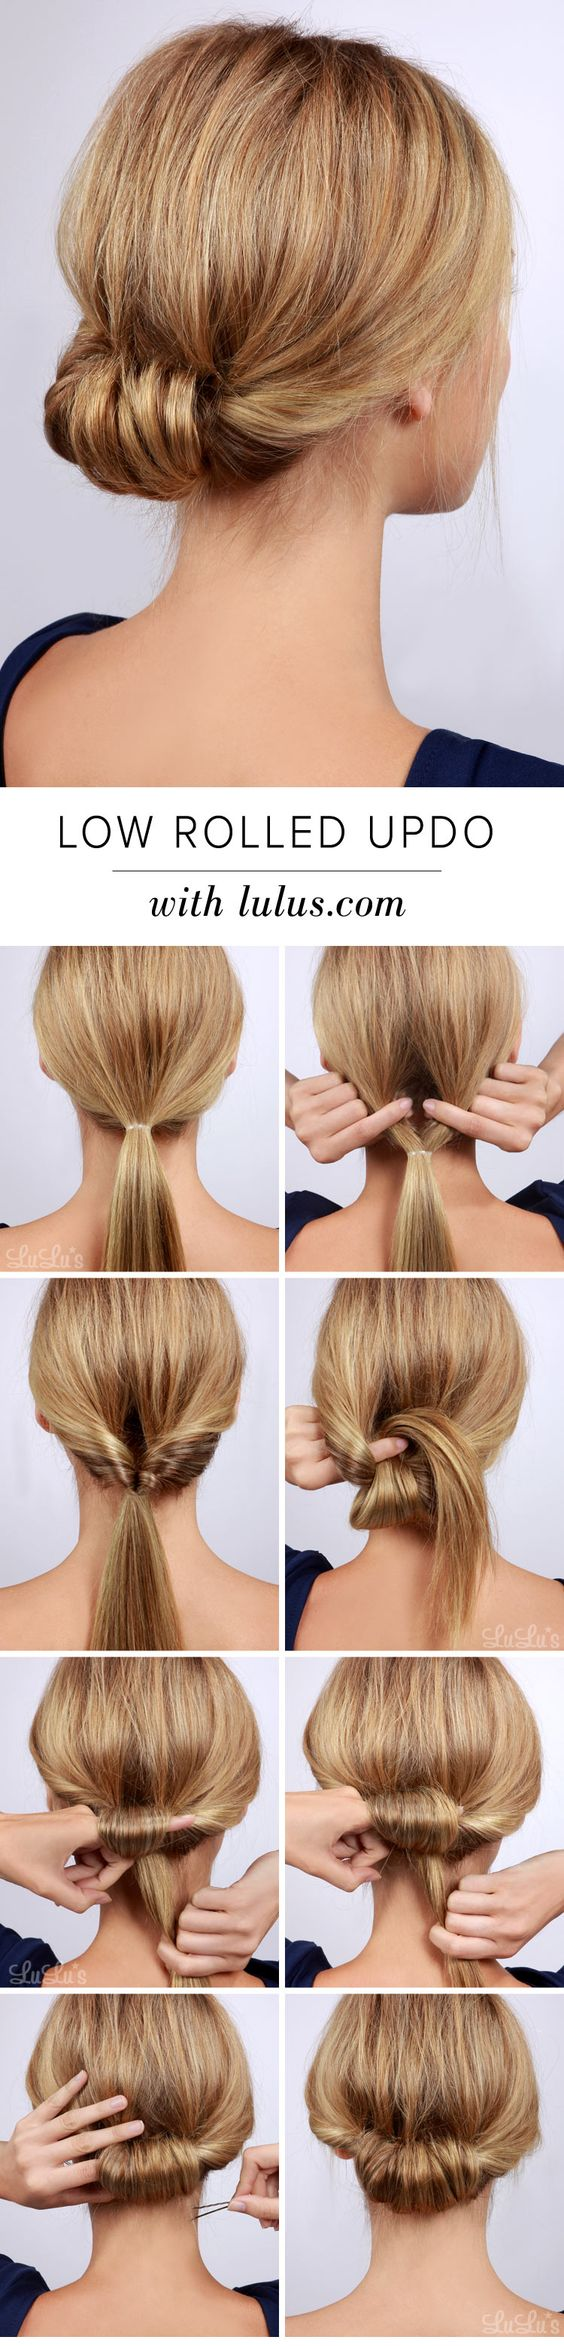 11 easy step by step updo tutorials for beginners – hair